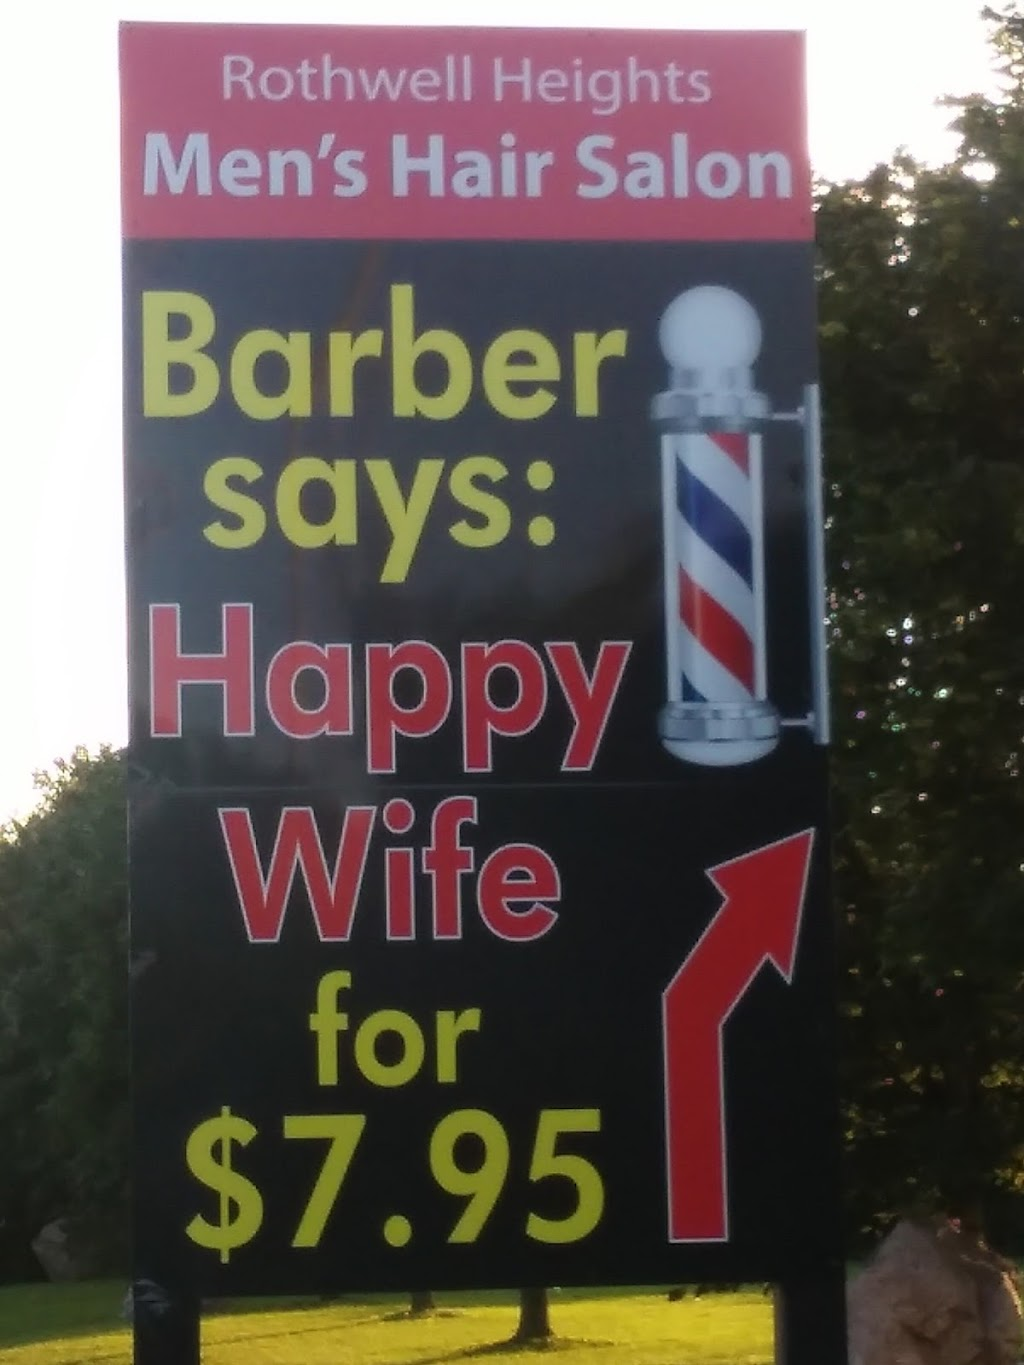 Rothwell Heights Barber Shop | hair care | 949 Montreal Rd, Ottawa, ON K1K 0S6, Canada | 6137410763 OR +1 613-741-0763